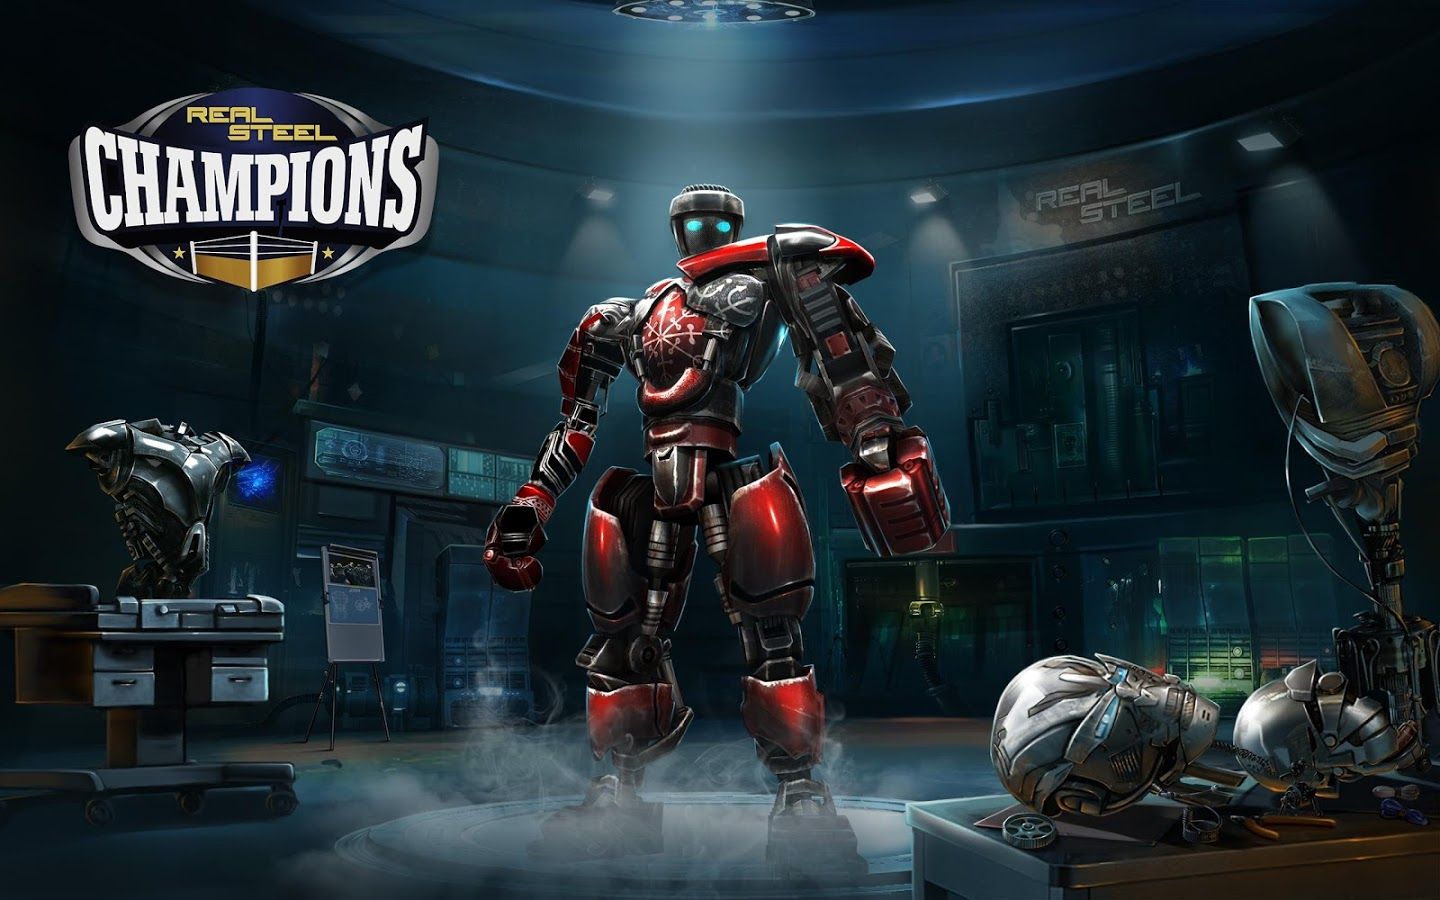 ������� ������� ���� Real Steel Champions �����/MOD �� ������� � ������� (�������� �����: ��������) ��������� apk ��� ����������� � �������� ���.